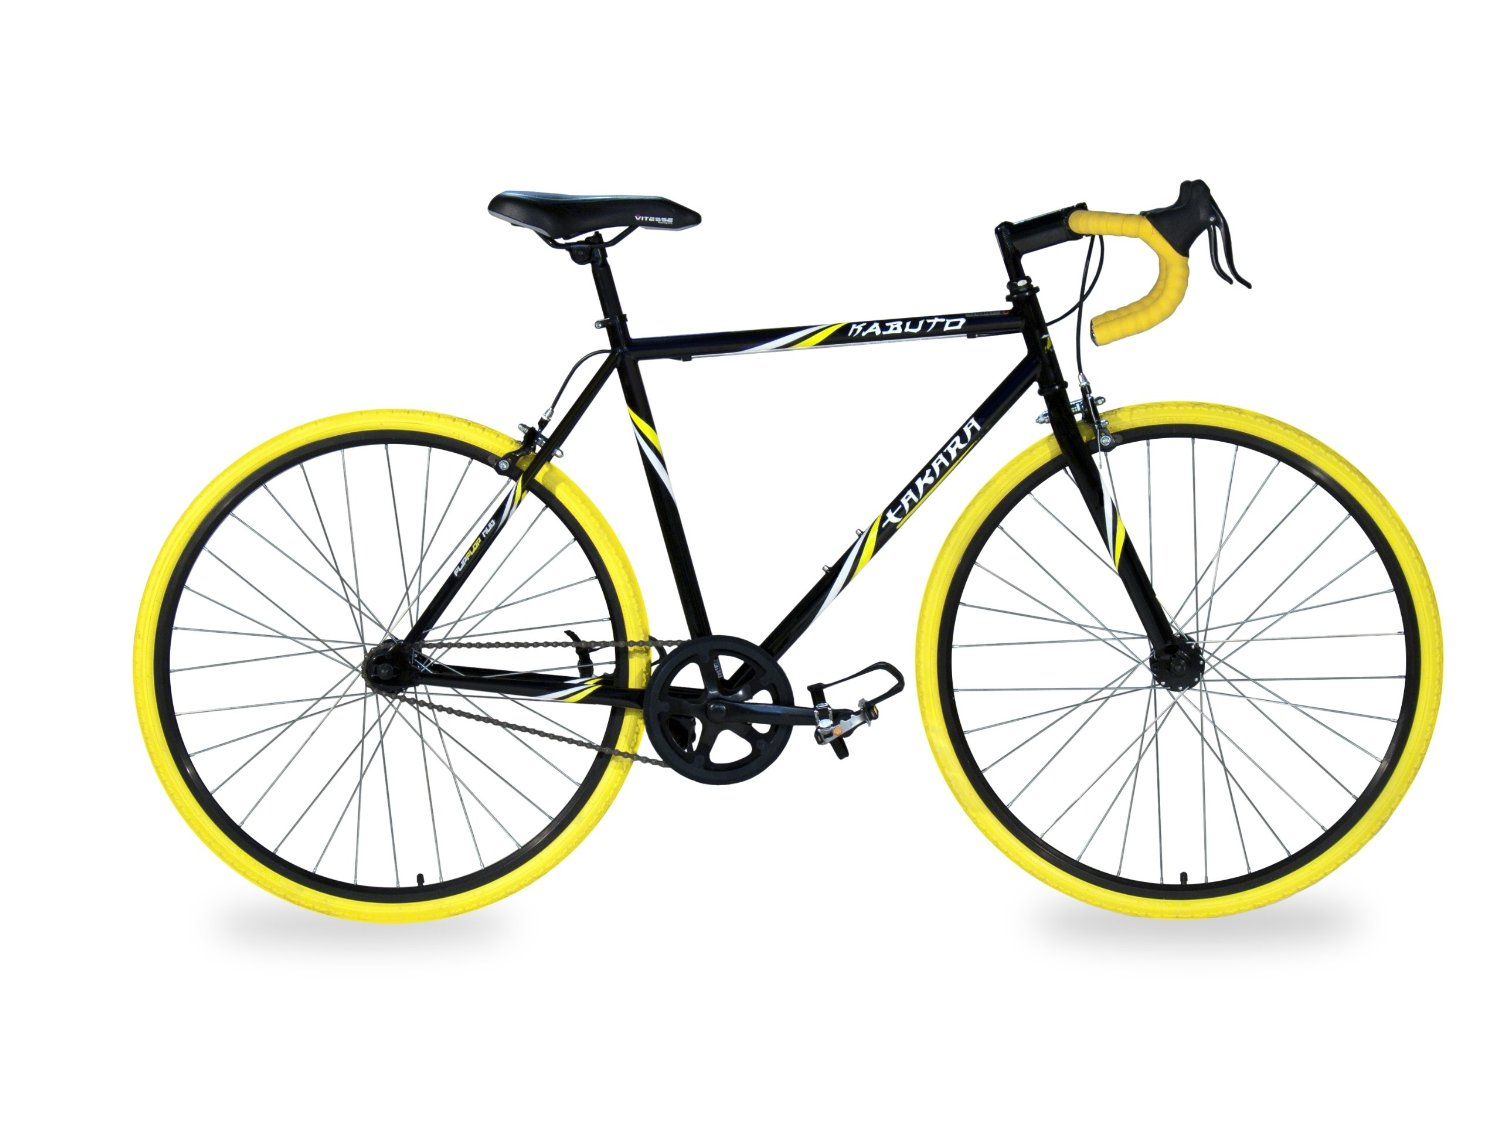 Takara Kabuto Single Speed Road Bike-2